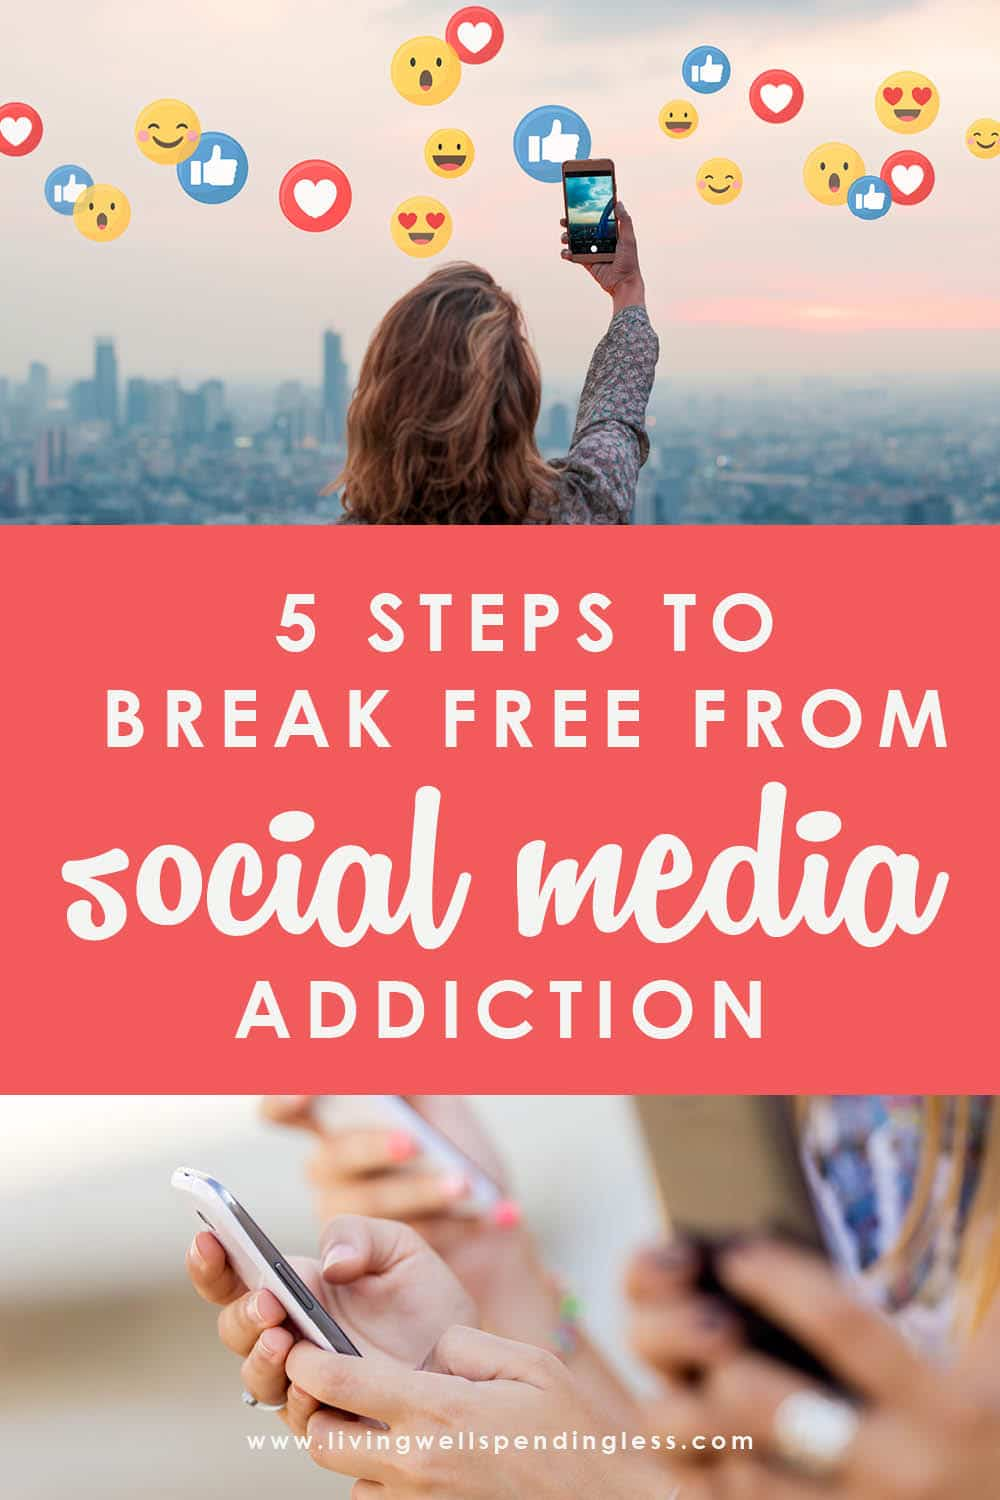 """Do you find yourself getting dragged into the time-suck of social media? If a """"quick look"""" ends up turning into the afternoon, then these 5 Steps to Break Free from Social Media Addiction will help you get your time back without having to delete a single app. It's a mind saver AND a game changer! #socialmedia #socialmedialife #timemanagement #addiction #moretime #focus"""